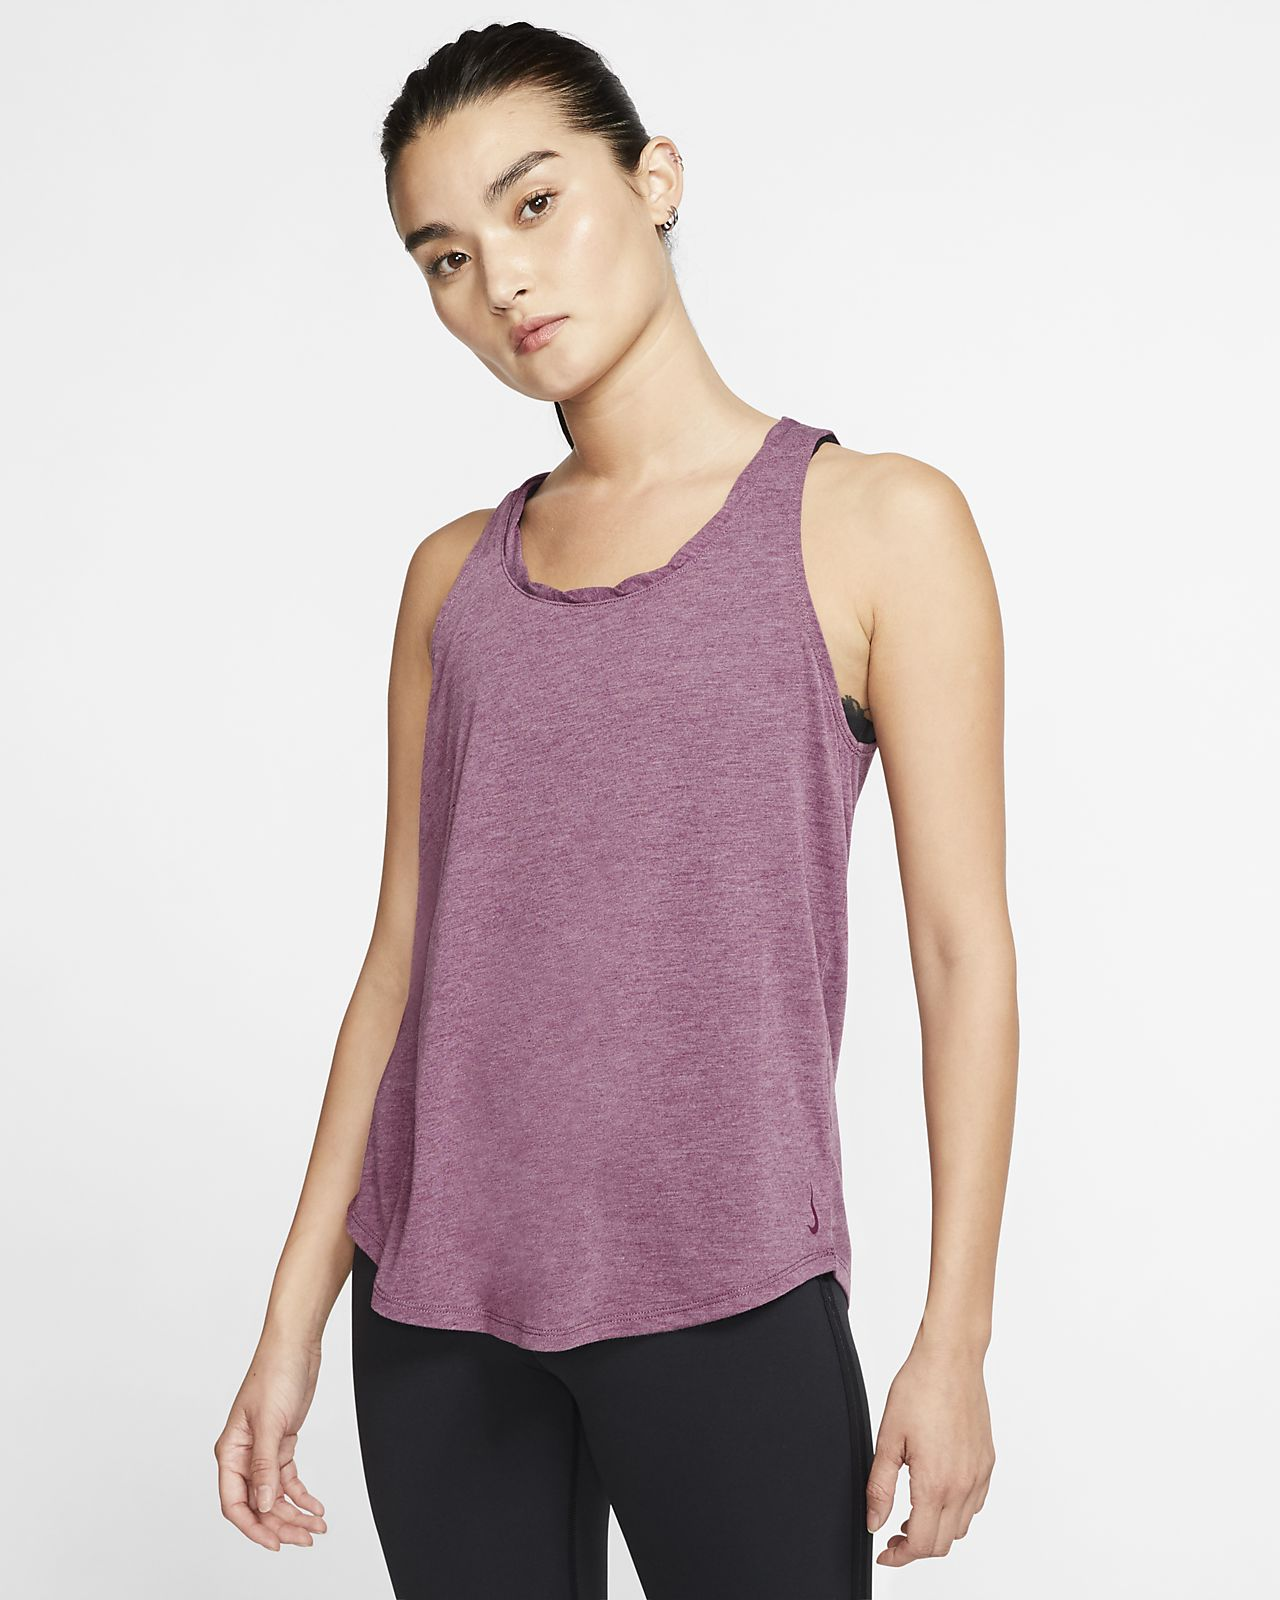 Nike Yoga Women's Training Tank